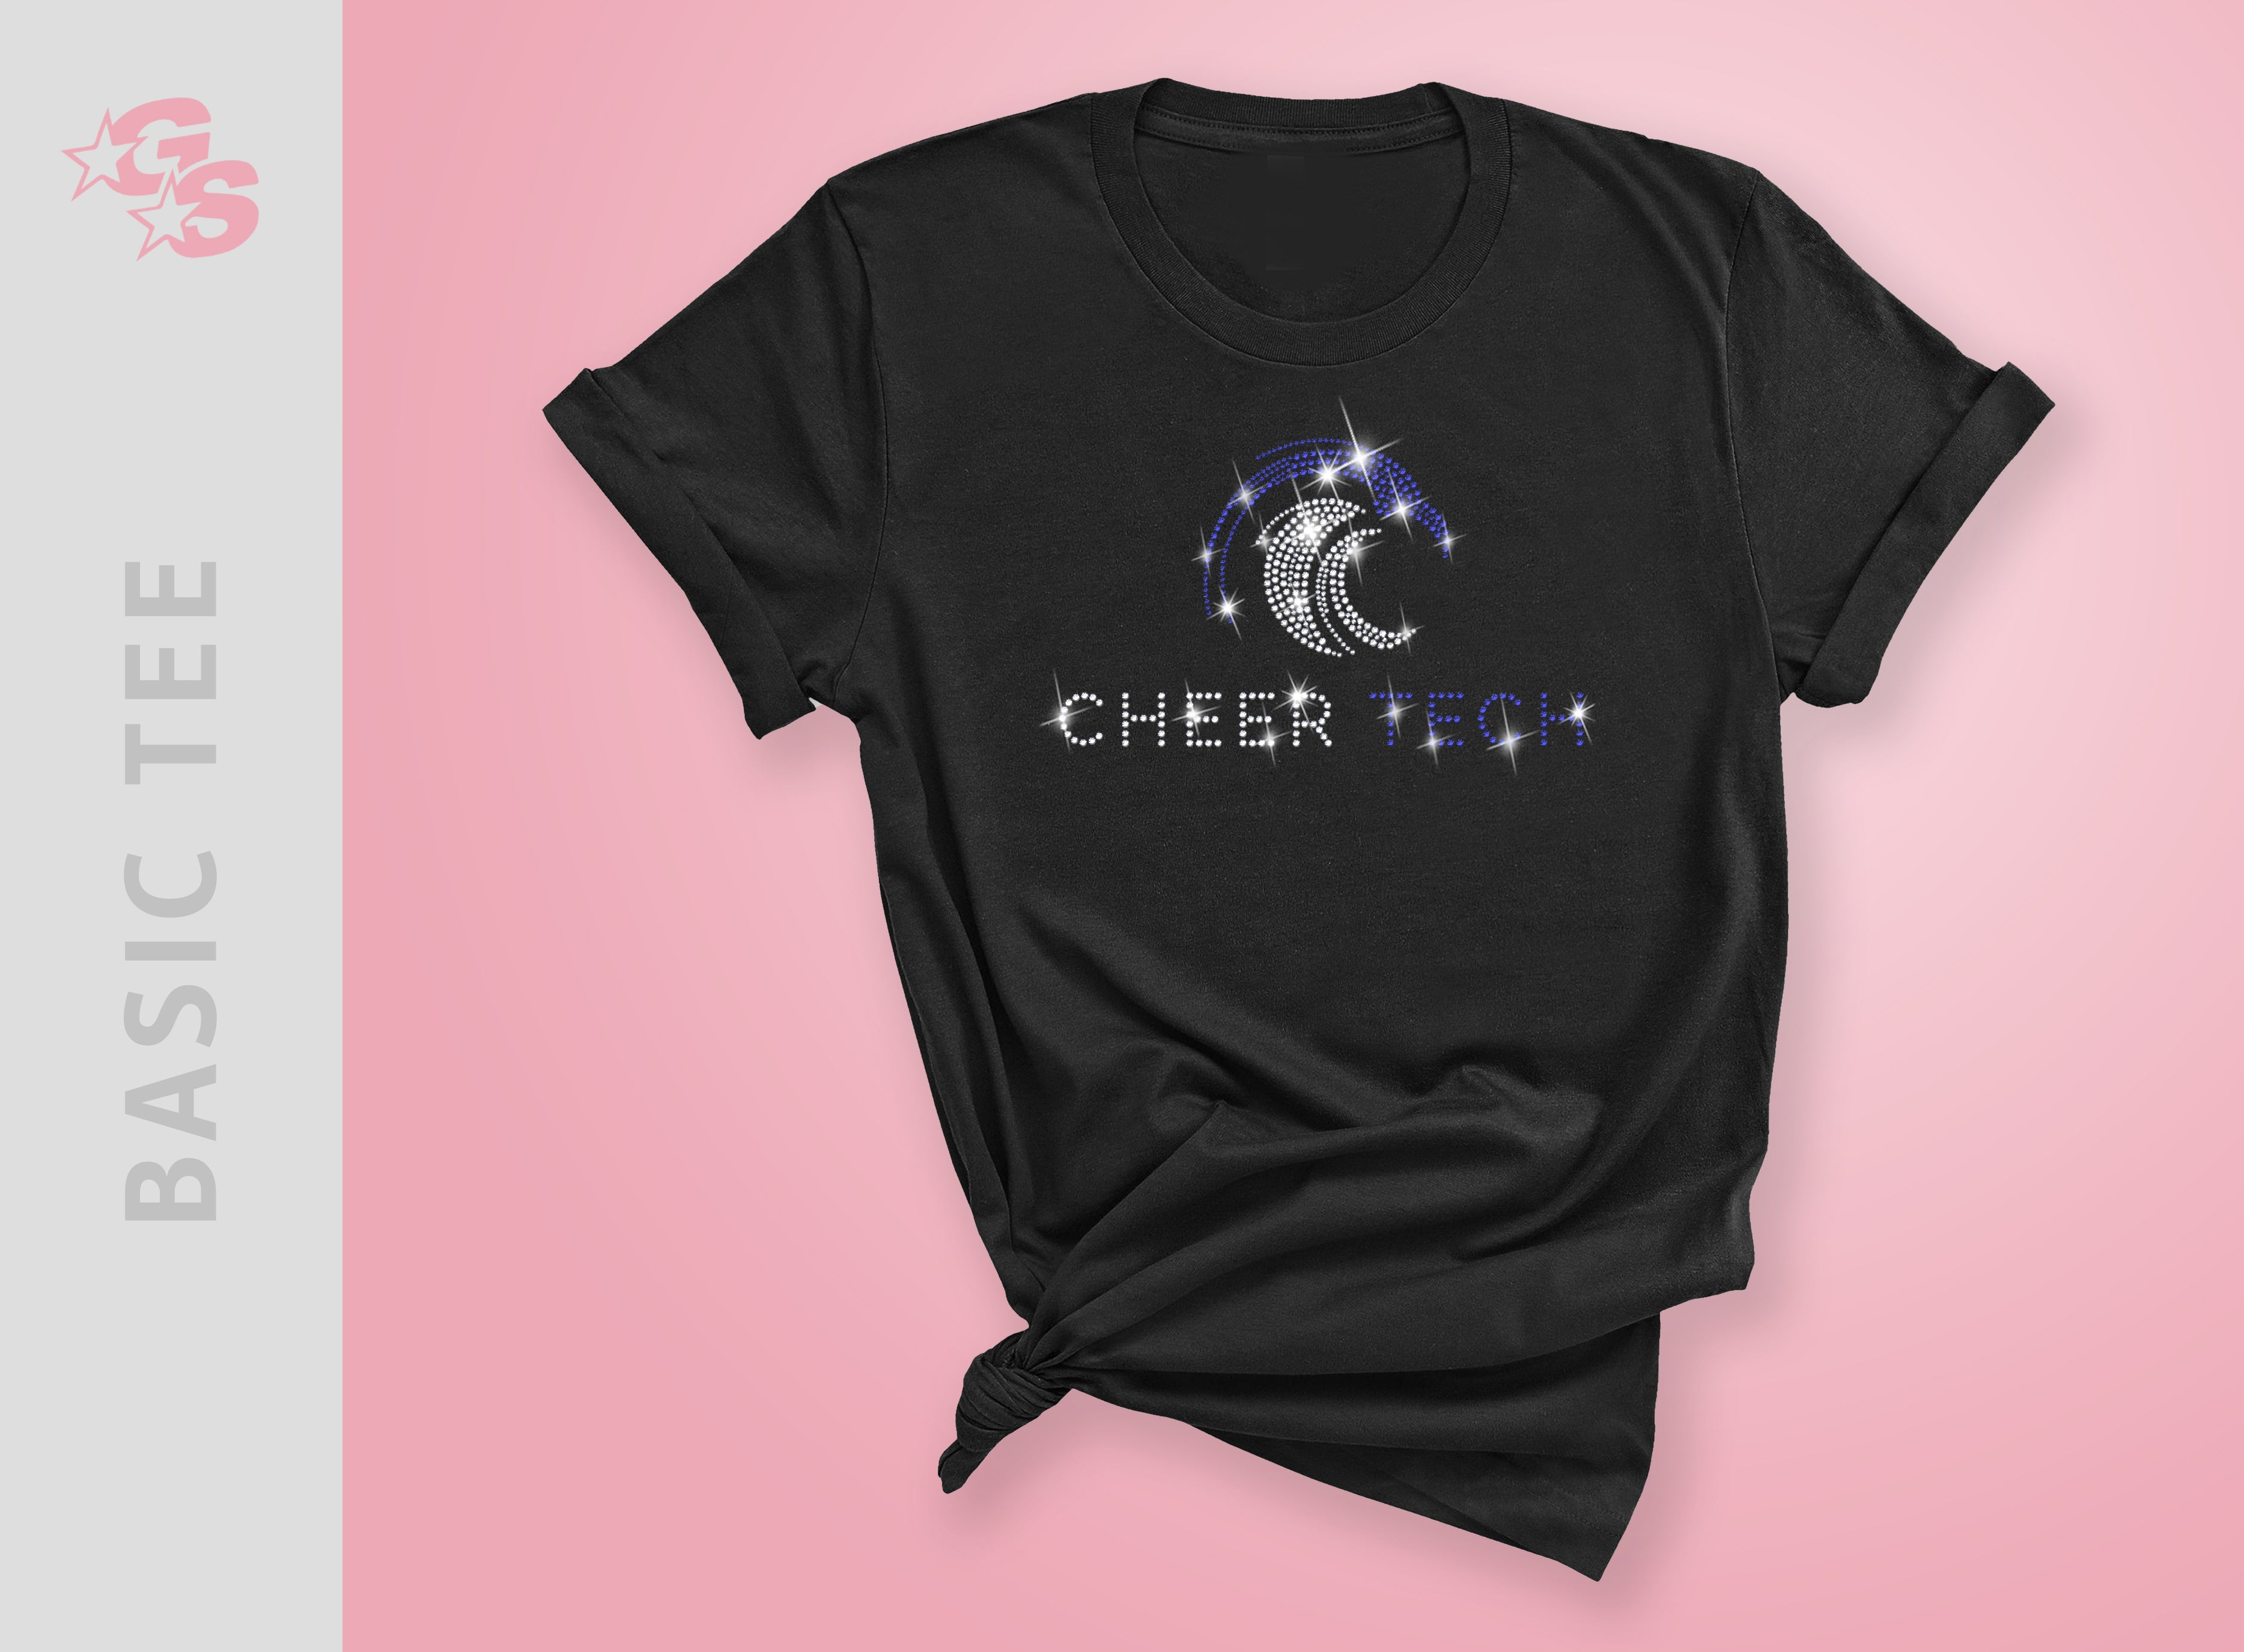 Cheer Tech Basic Tee - Unisex